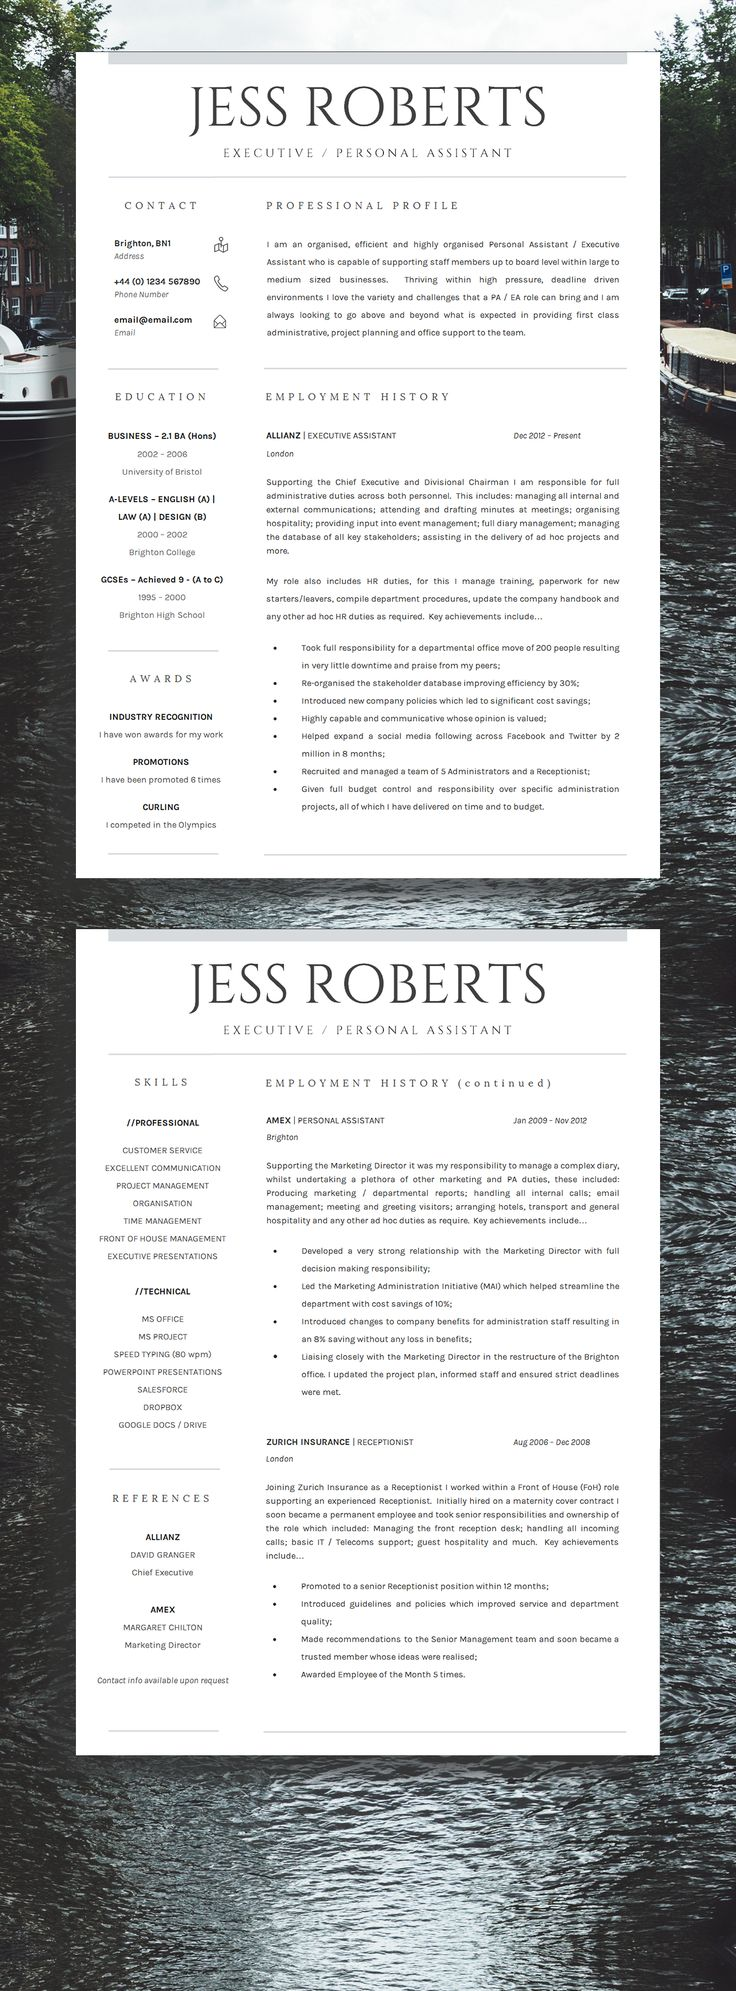 professional curriculum vitae professional cv resume template for ms word cover letter mac or pc newgate